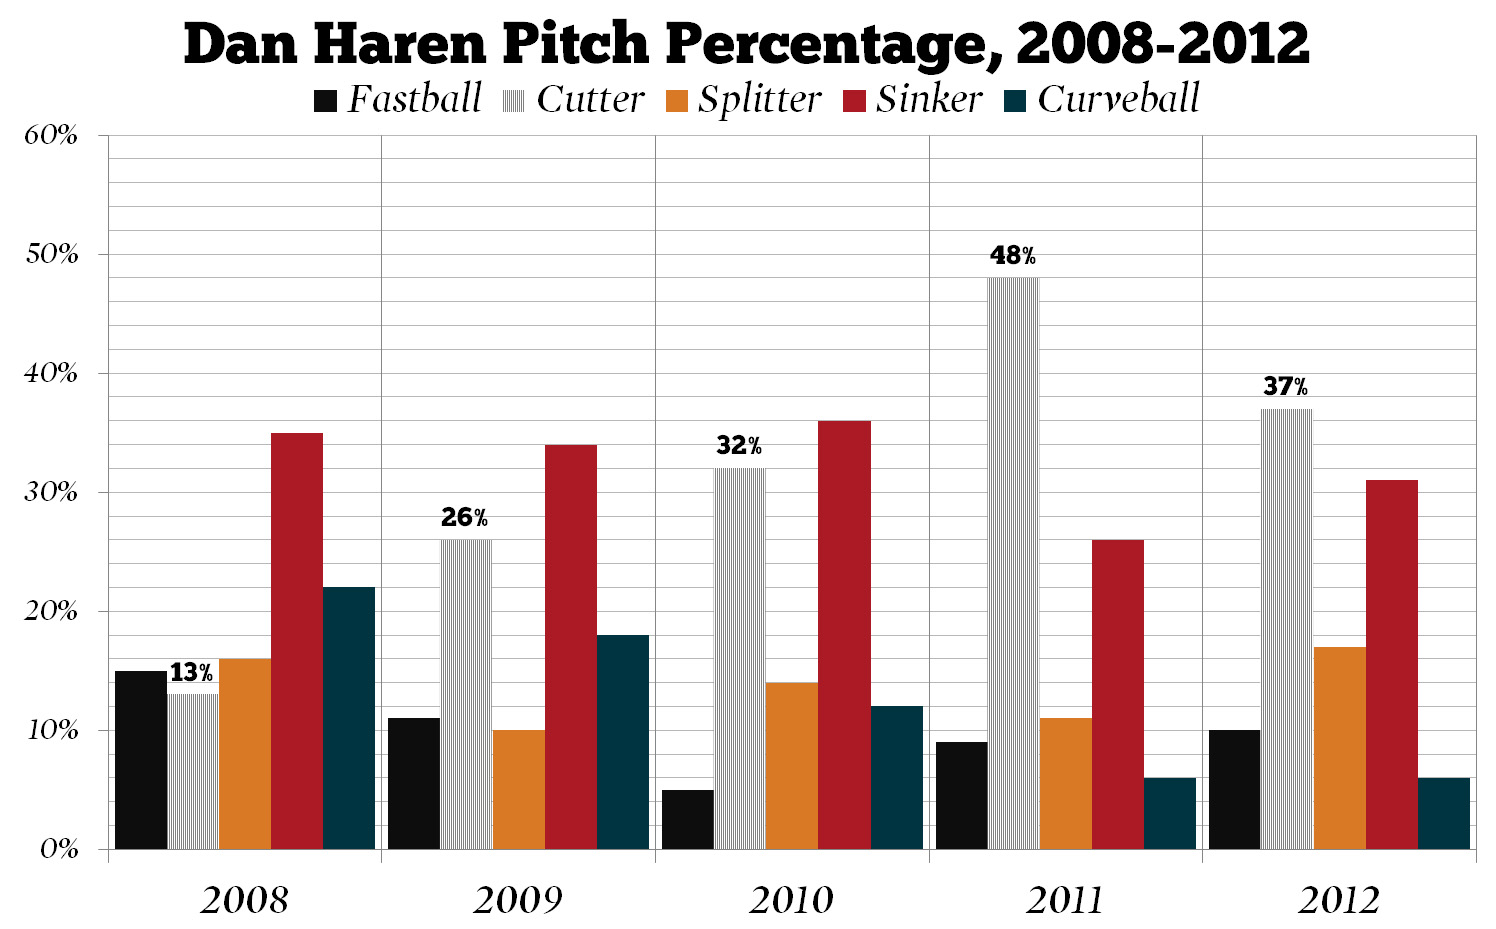 Dan_haren_pitch_percentage_medium